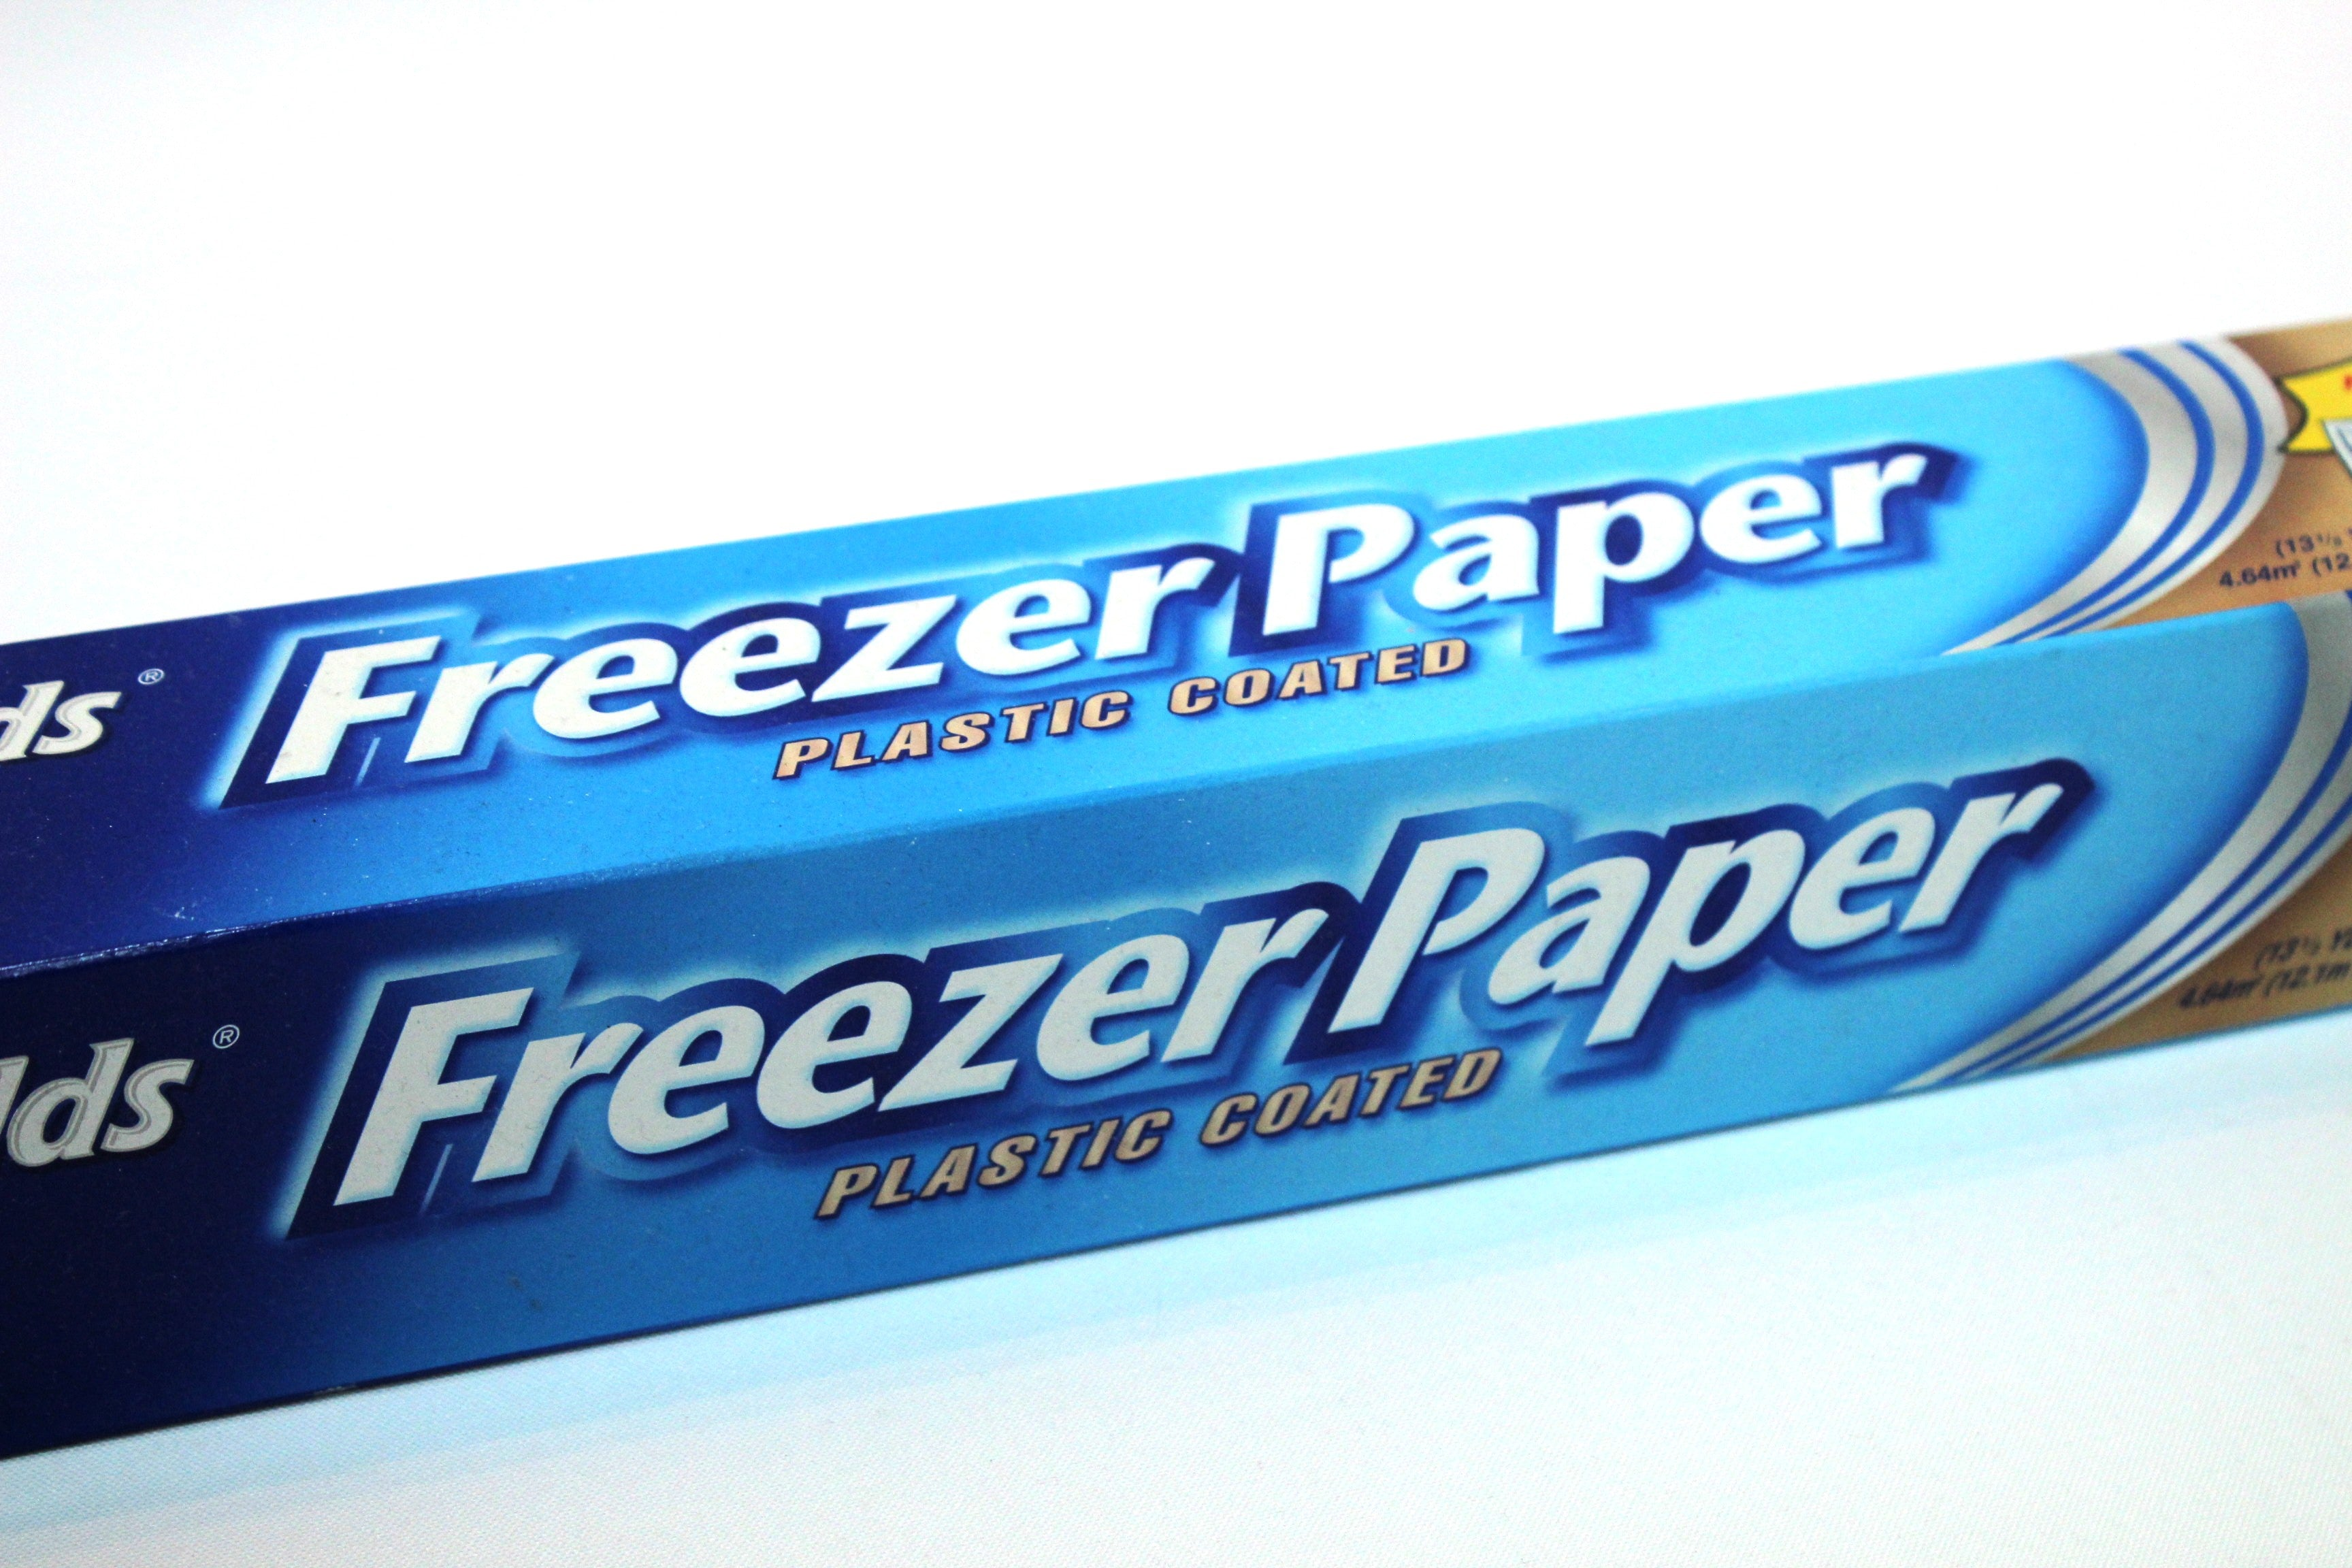 Reynolds freezer paper